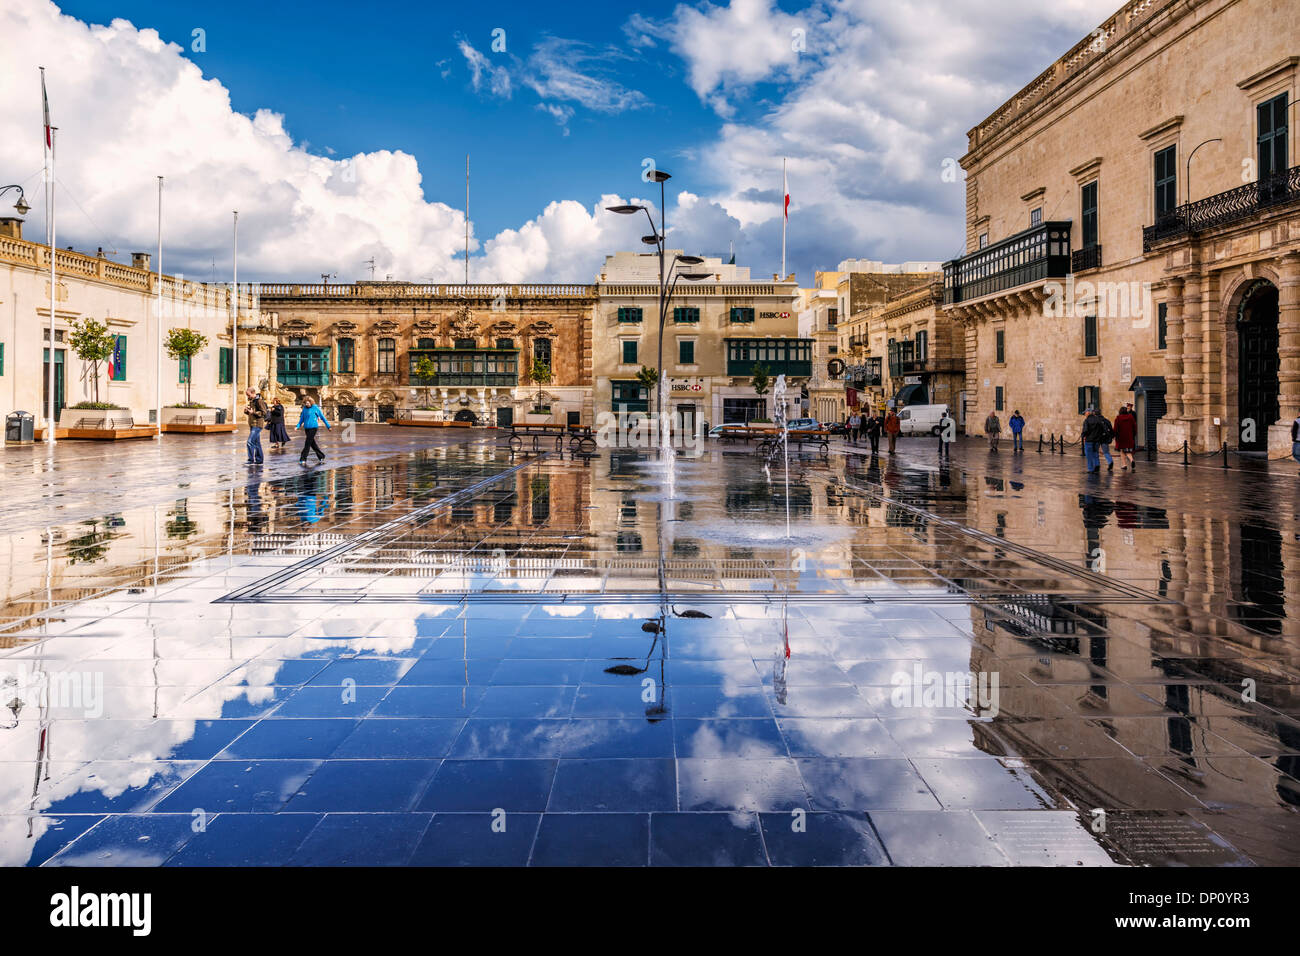 St George's Square and Grand Master's Palace, Valletta, Malta - Stock Image